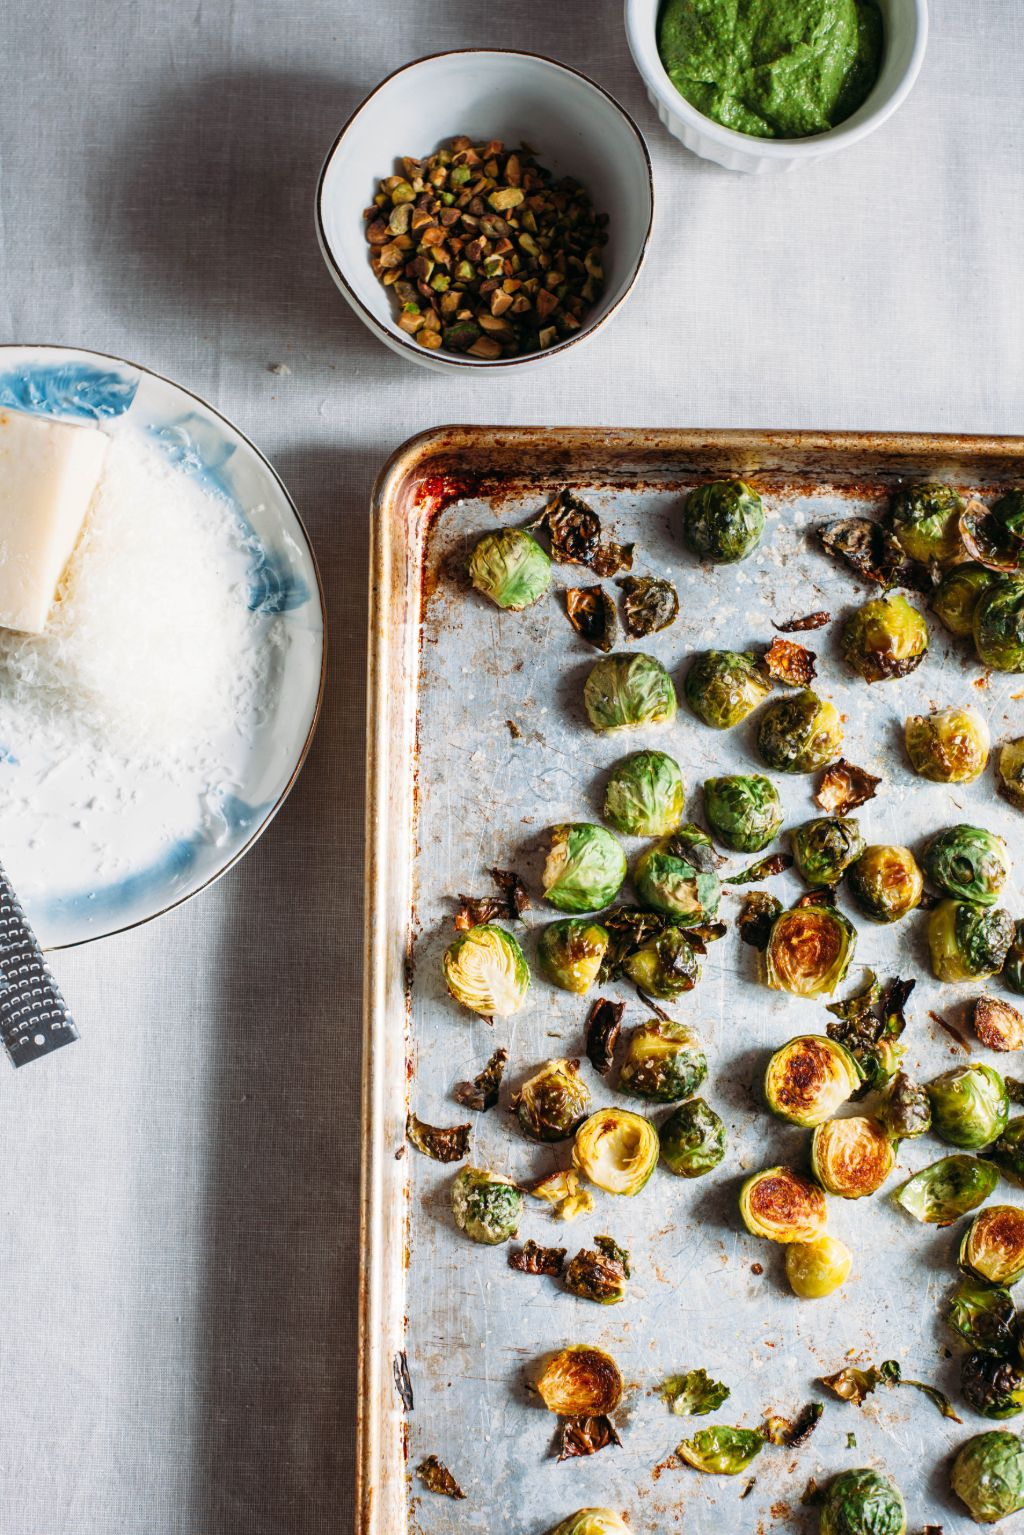 Roasted Brussels Sprouts with Salsa Verde and Pistachio - Tastemaker Blog